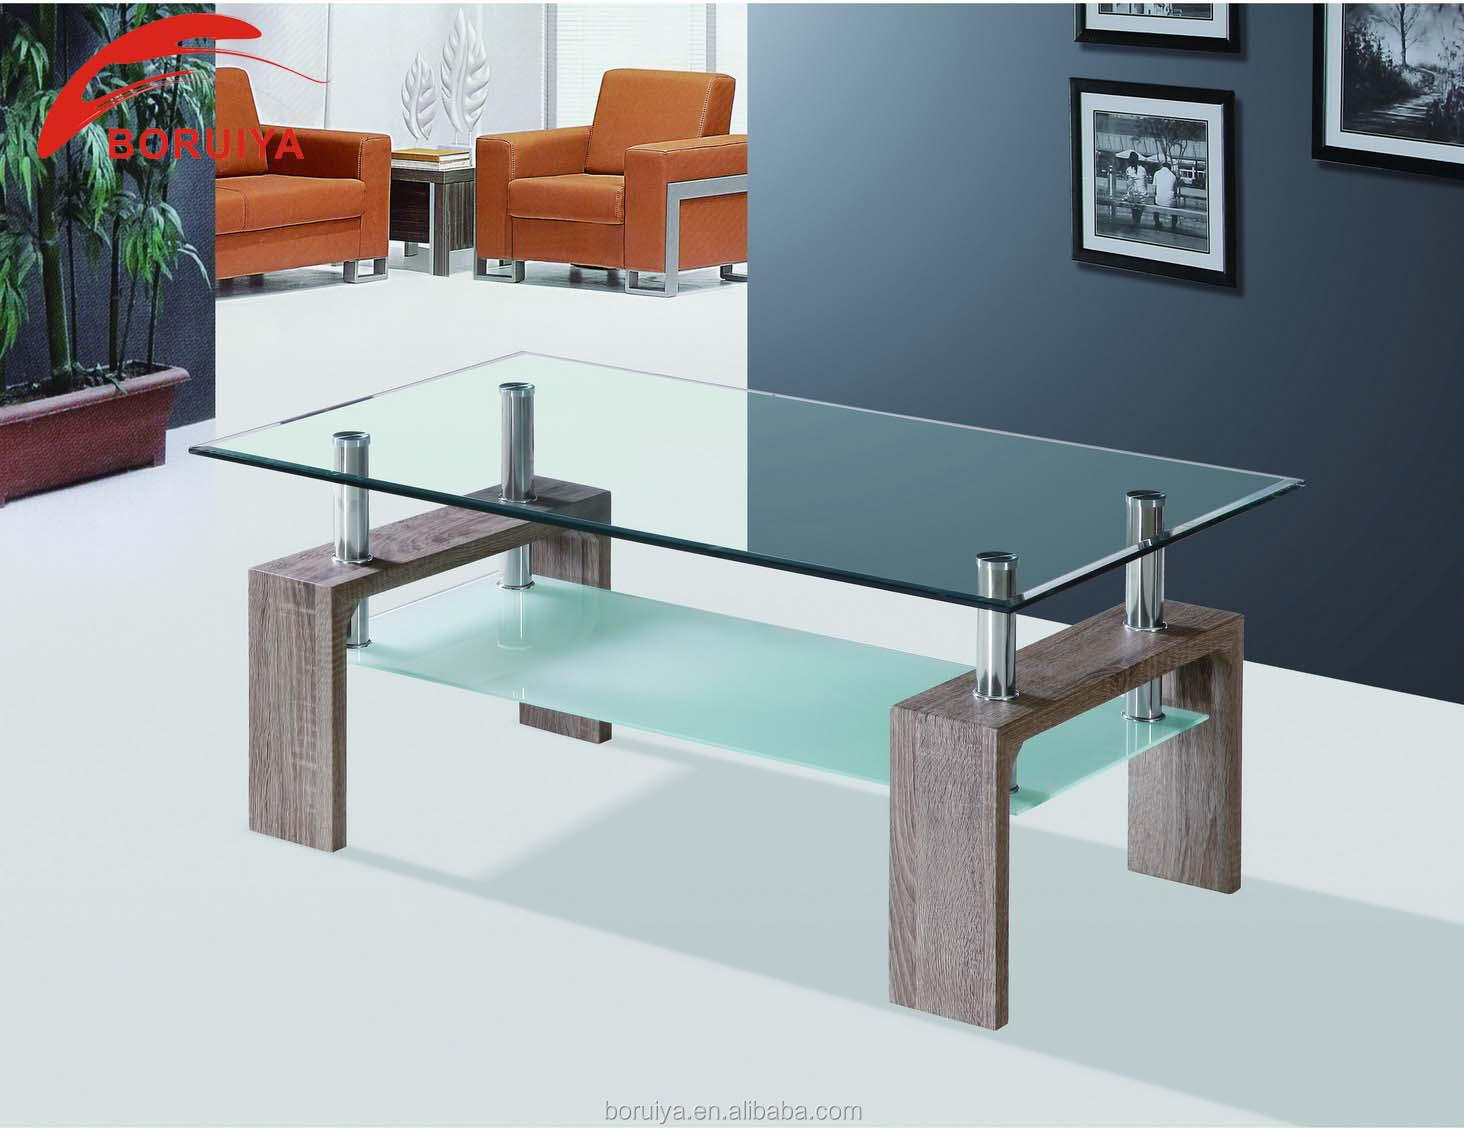 Glass top center table india crowdbuild for for Furniture table design examples